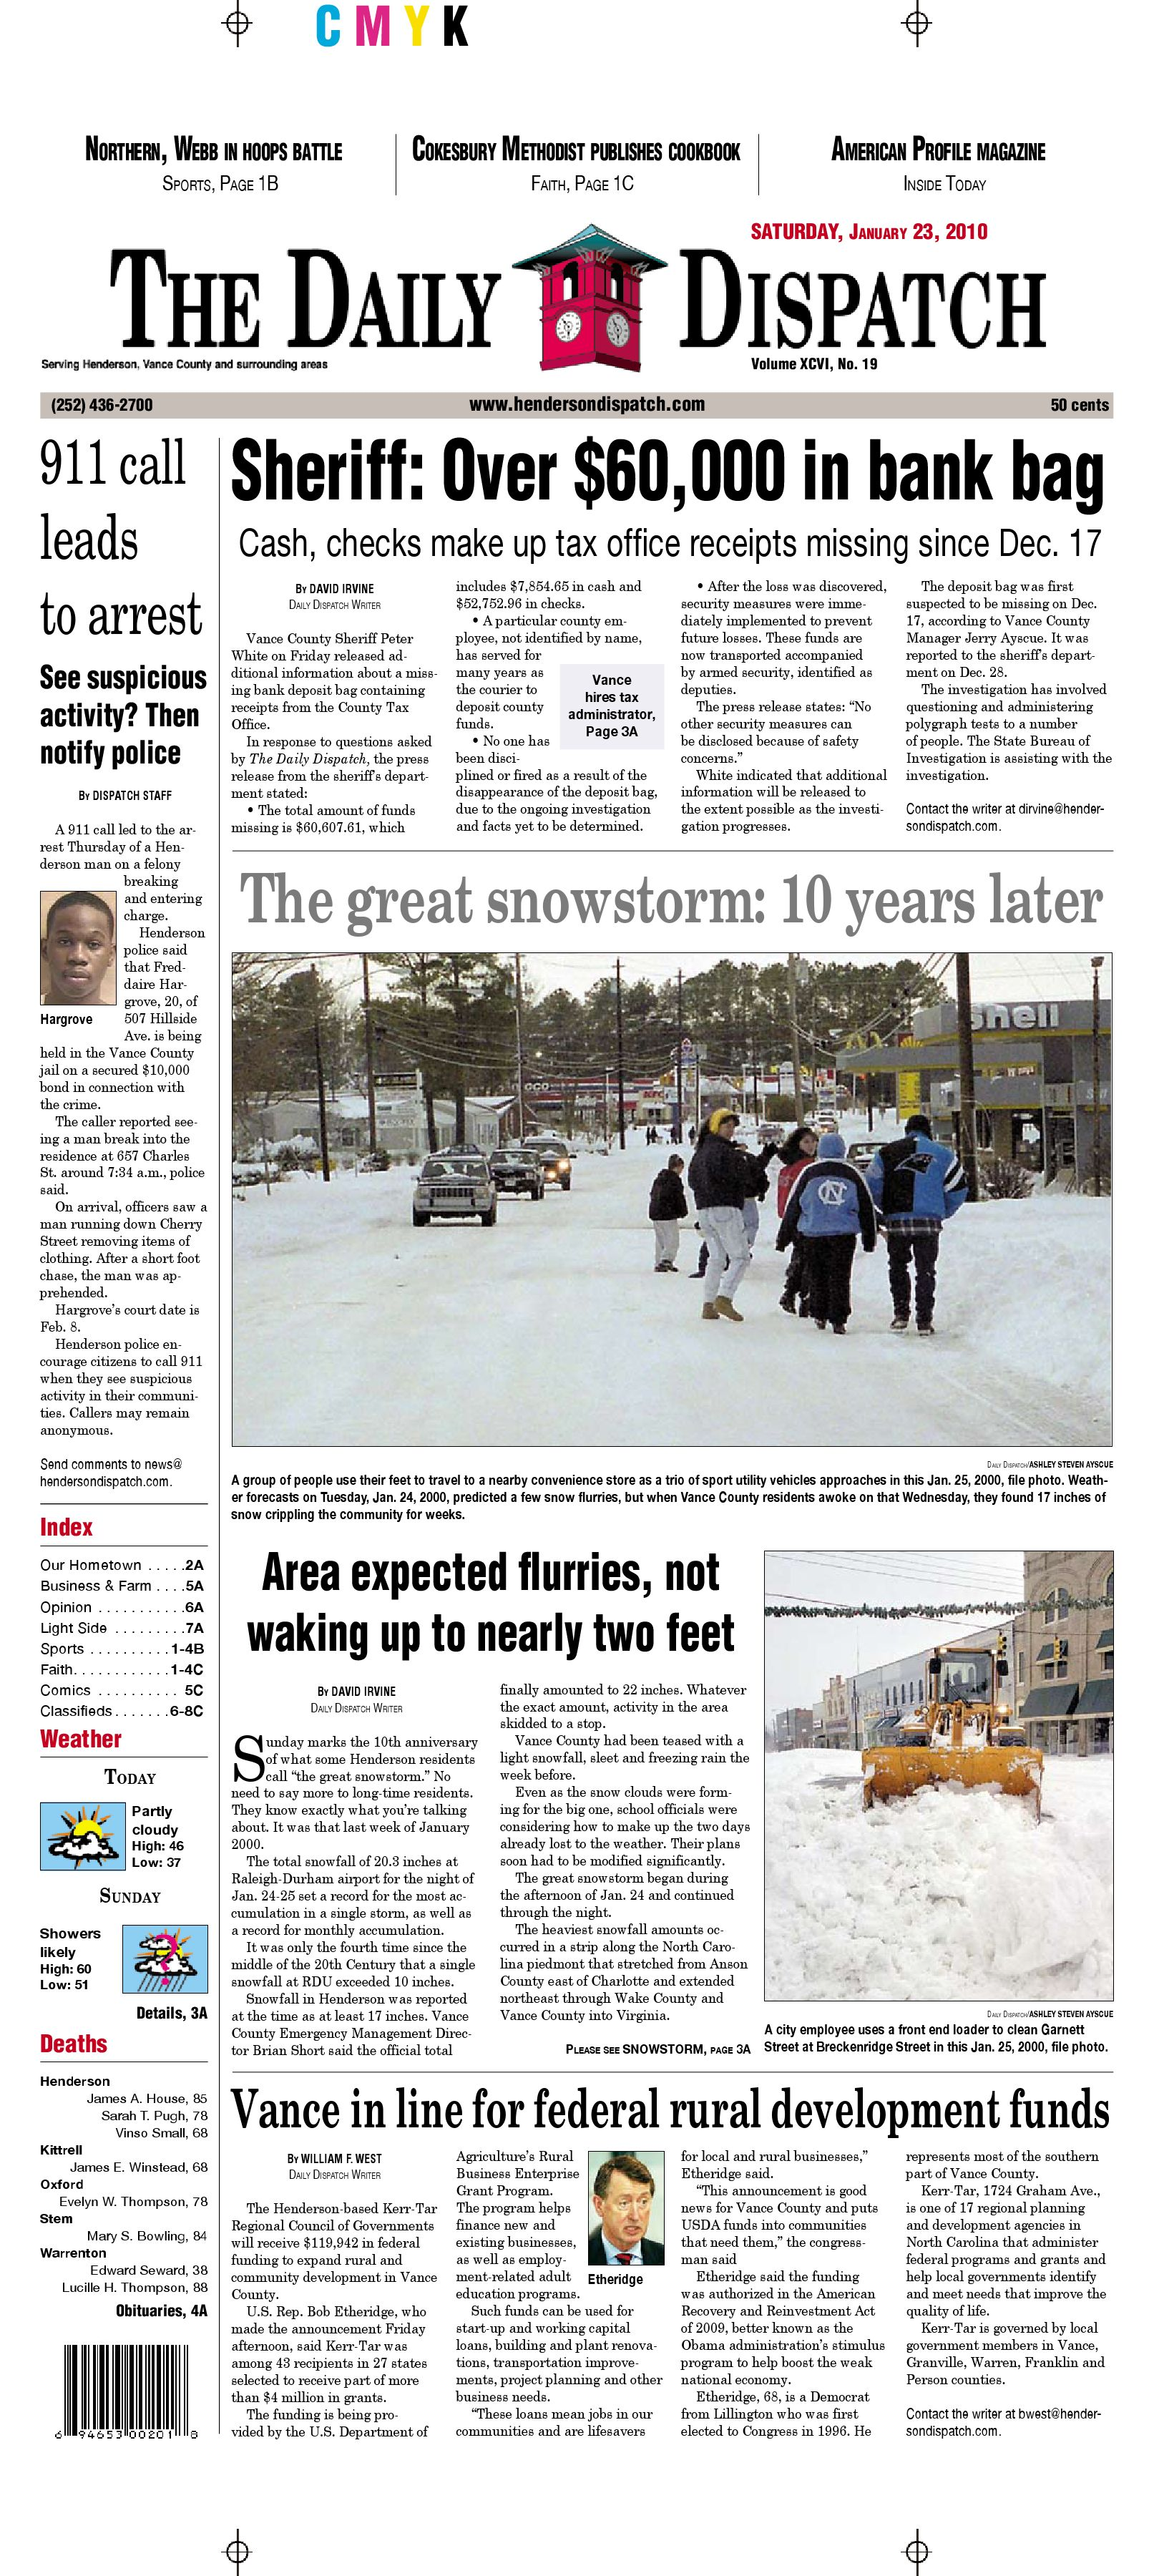 The Daily Dispatch - Saturday, January 23, 2010 by The Daily ...